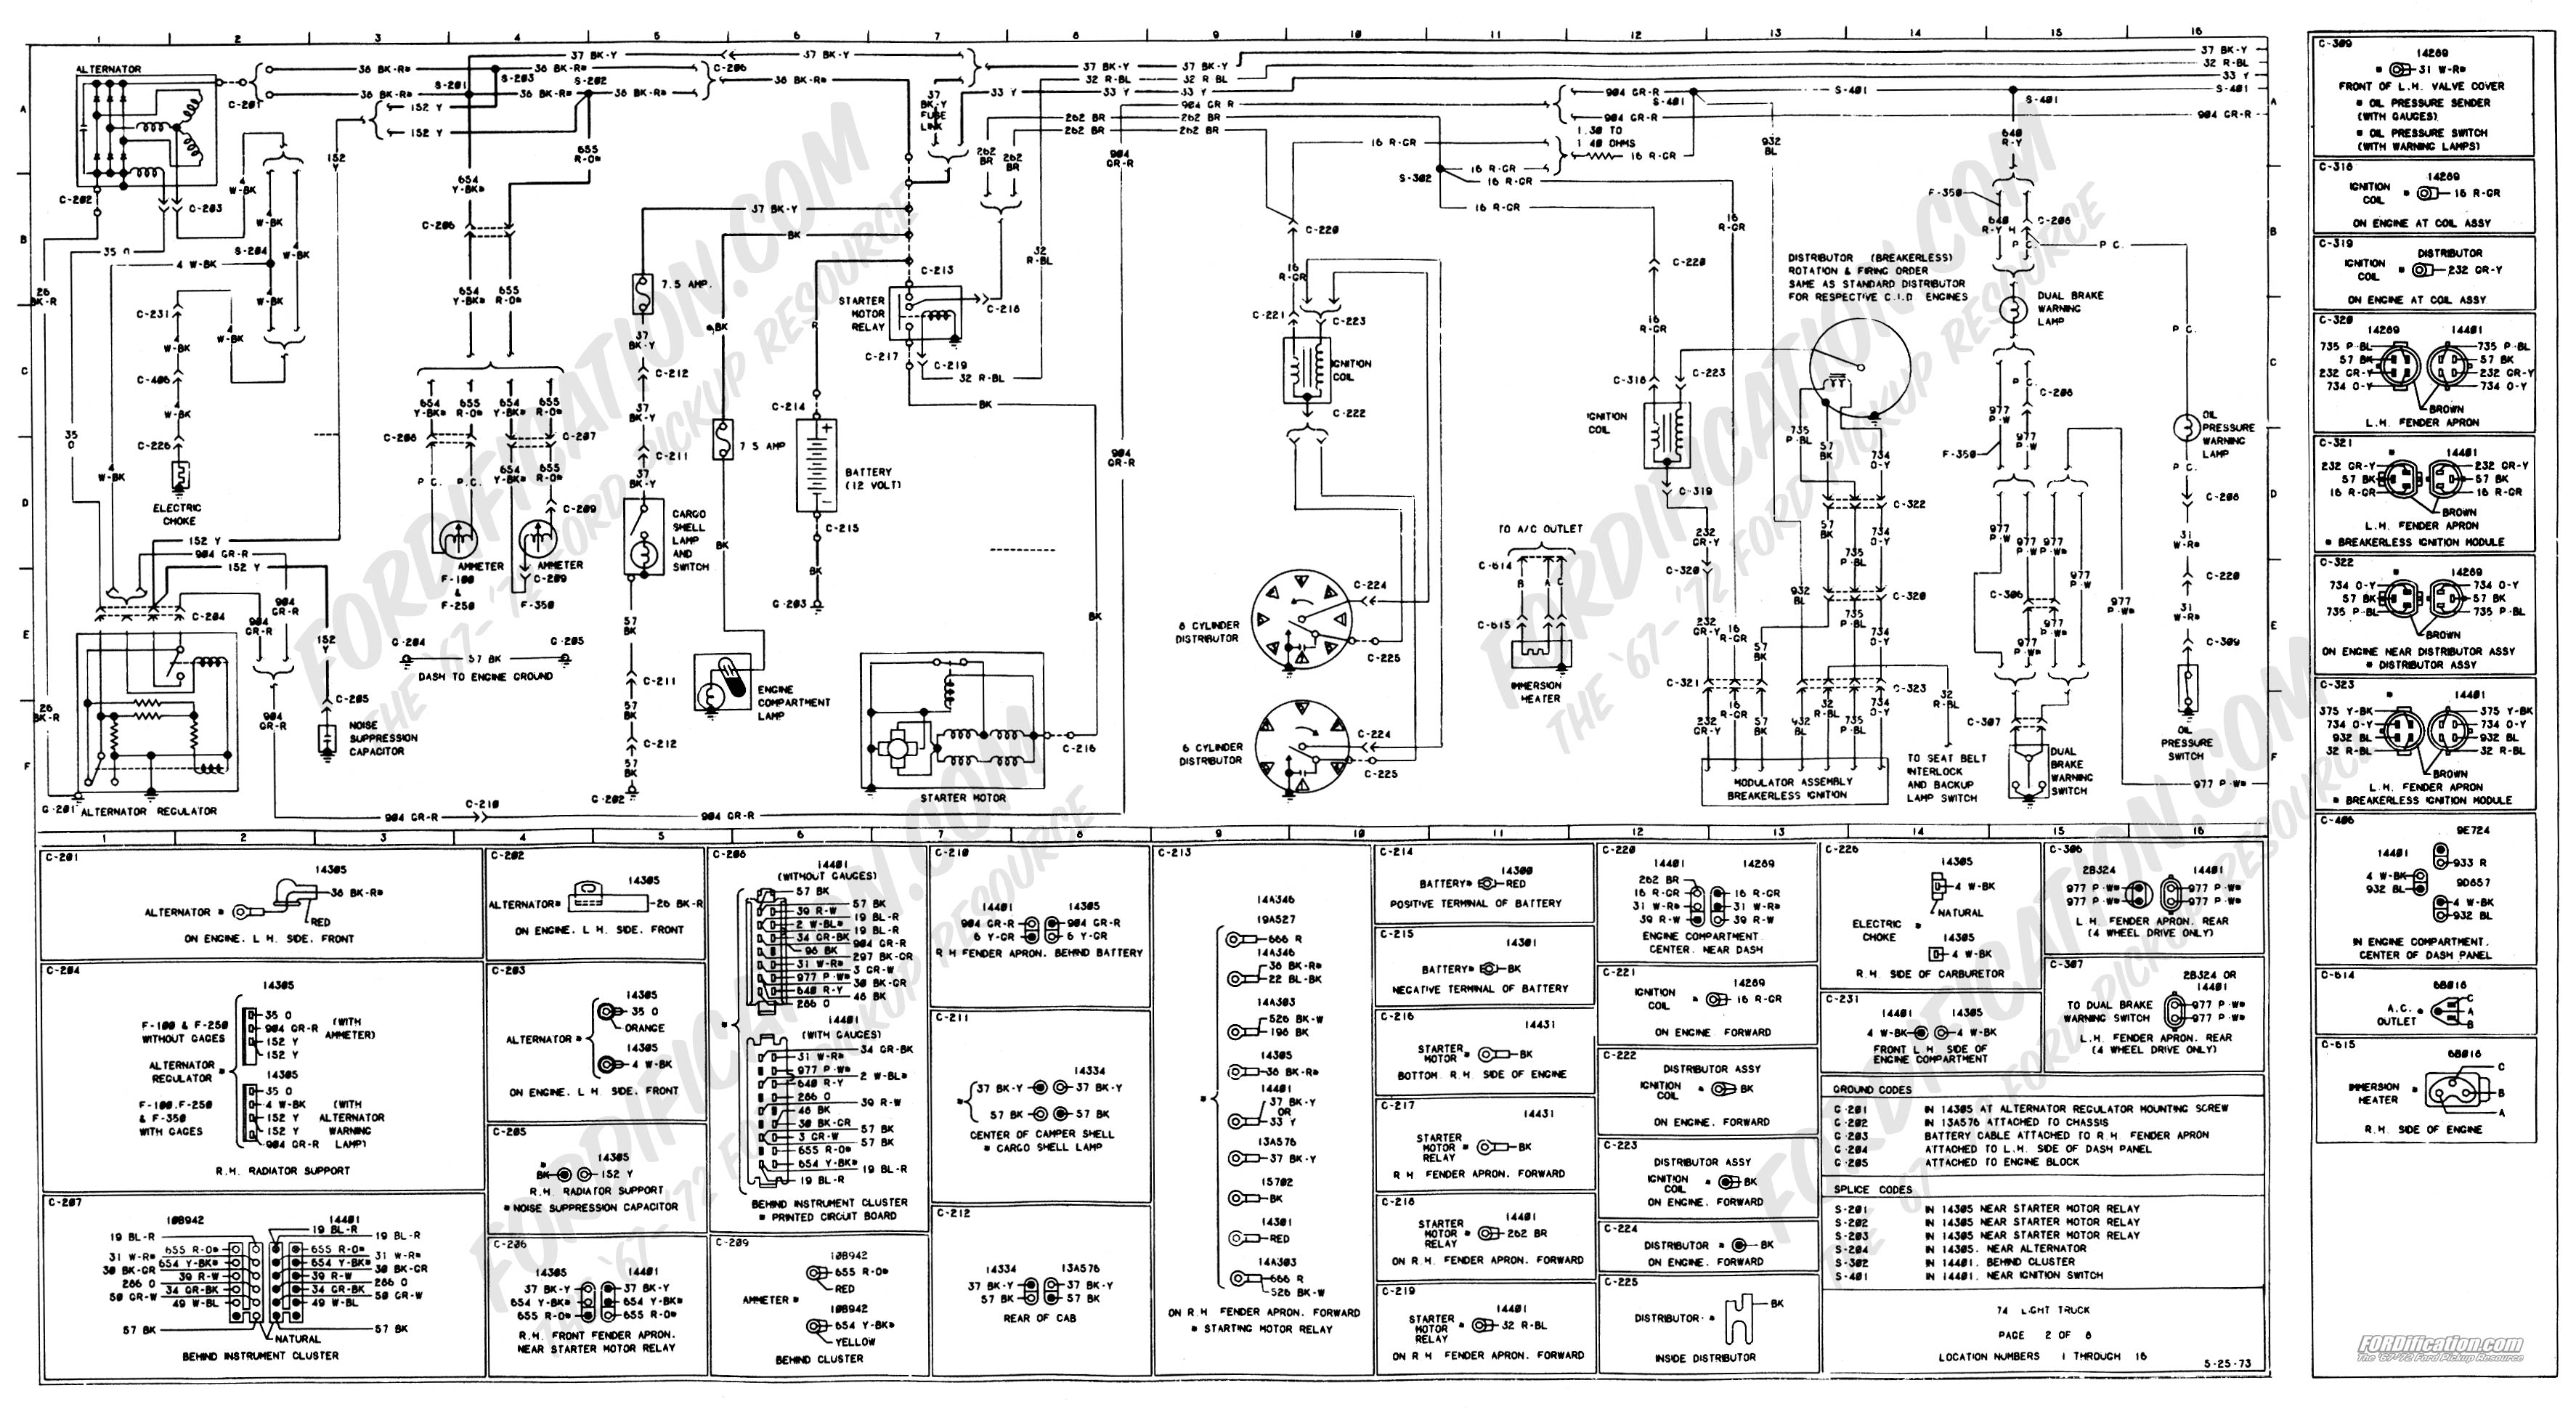 1973 1979 ford truck wiring diagrams schematics fordification net rh  fordification net 2000 Ford F-250 Wiring Diagram Wiring Diagram for 1988 F  250